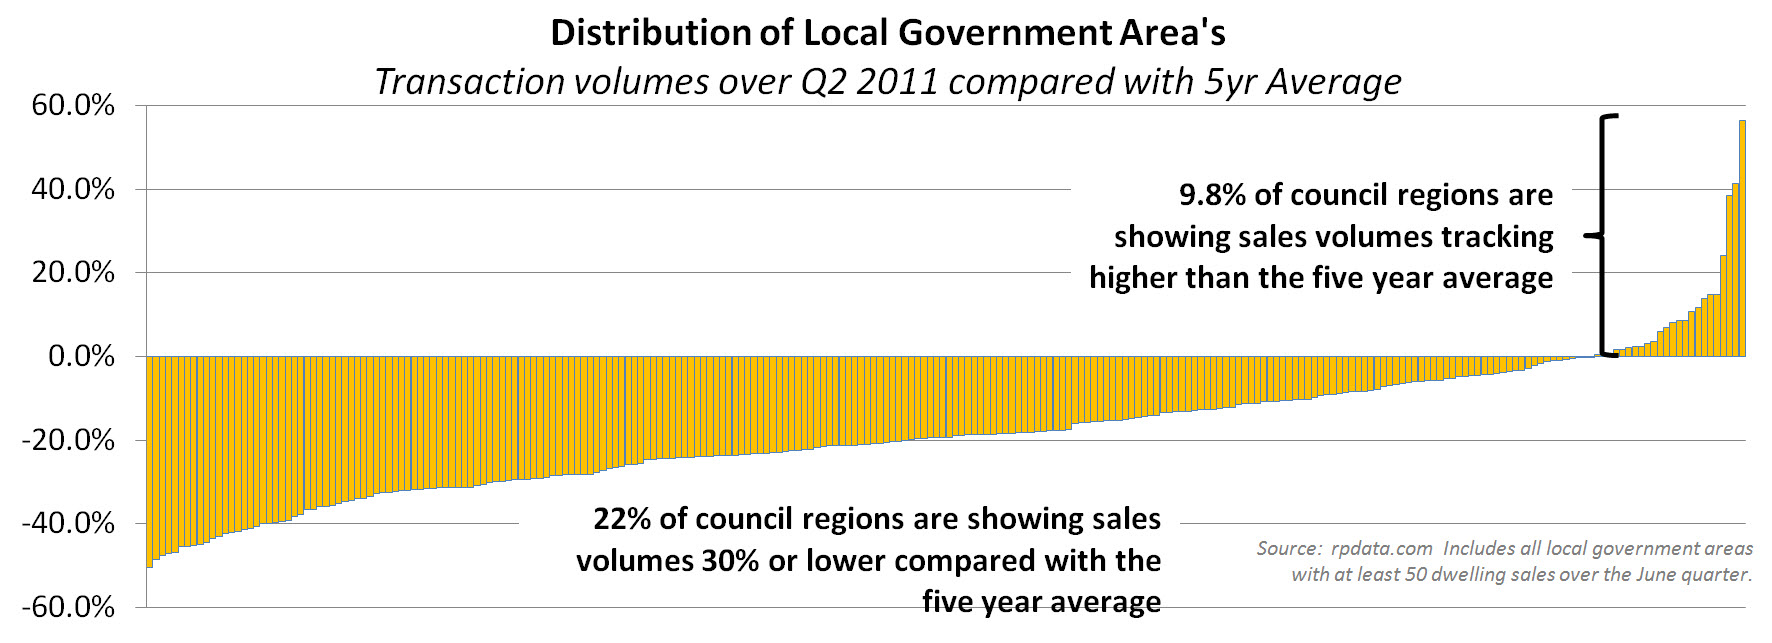 http://blog.rpdata.com/wp-content/uploads/2011/10/Distribution-of-Local-Government-Areas-580x210.jpg